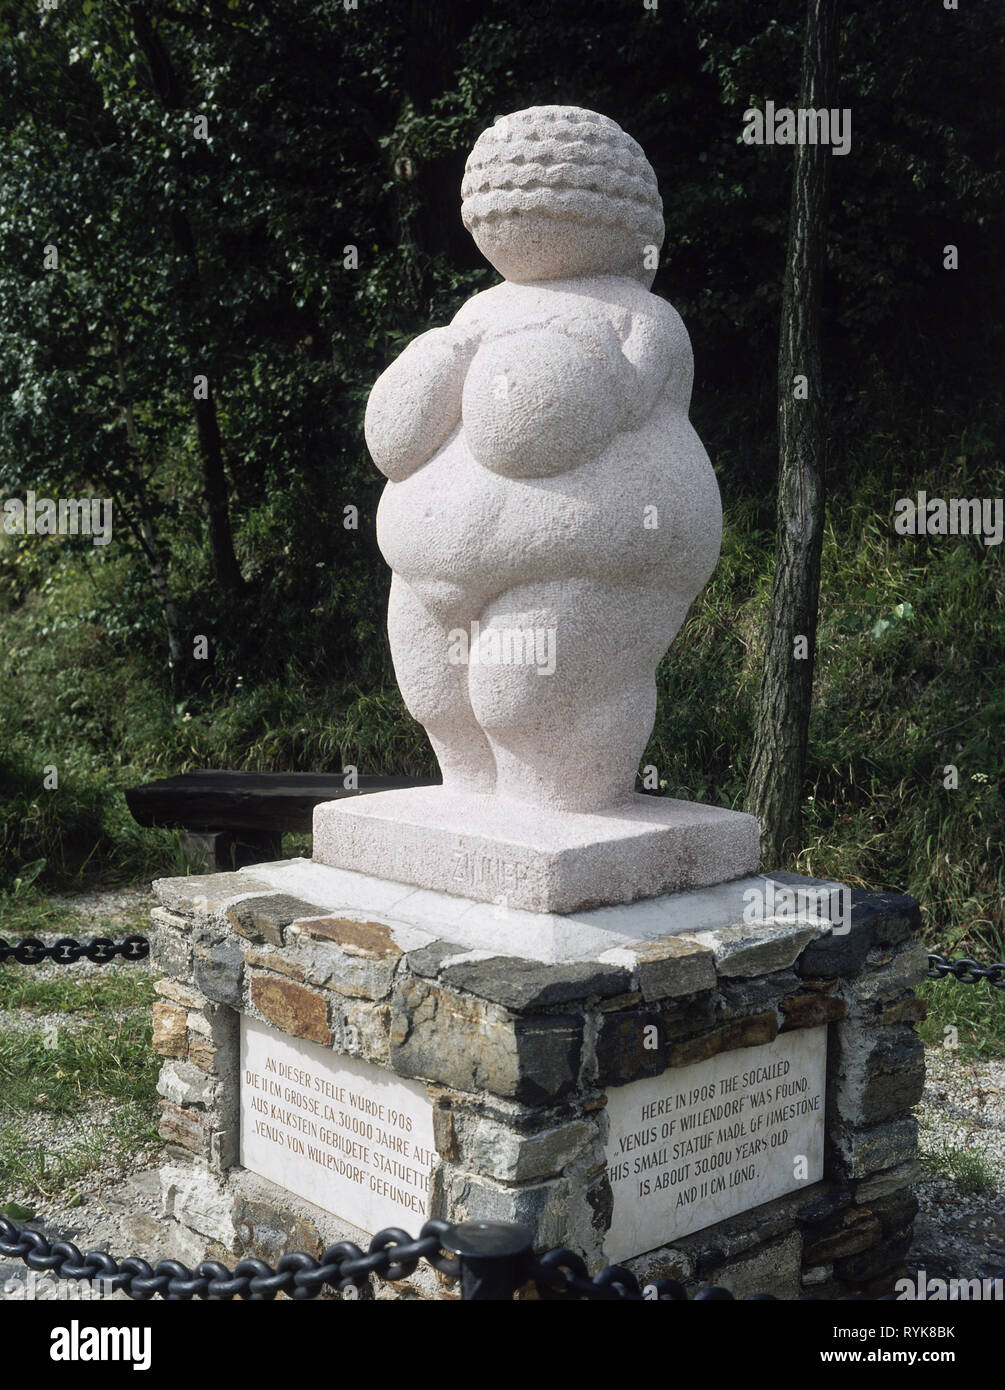 Preistoria, preistoria, belle arti, 'Venere di Willendorf' (replica), Willendorf nella Wachau, Additional-Rights-Clearance-Info-Not-Available Immagini Stock